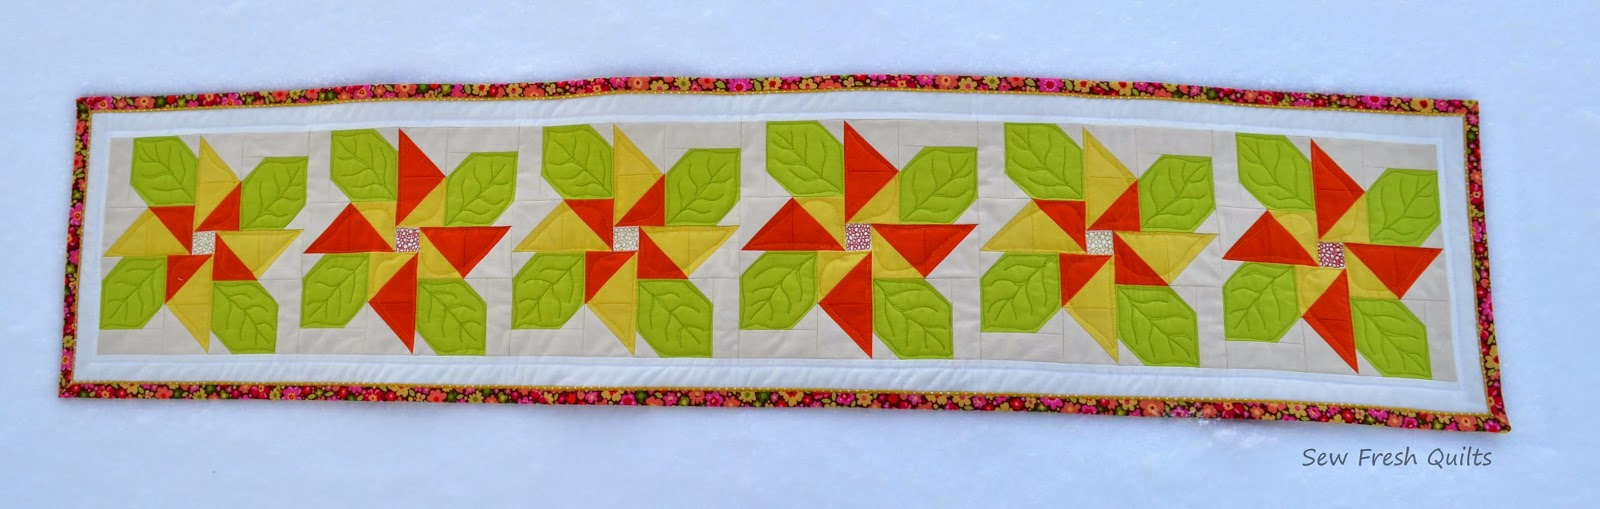 http://sewfreshquilts.blogspot.ca/2015/01/flowering-table-runner.html